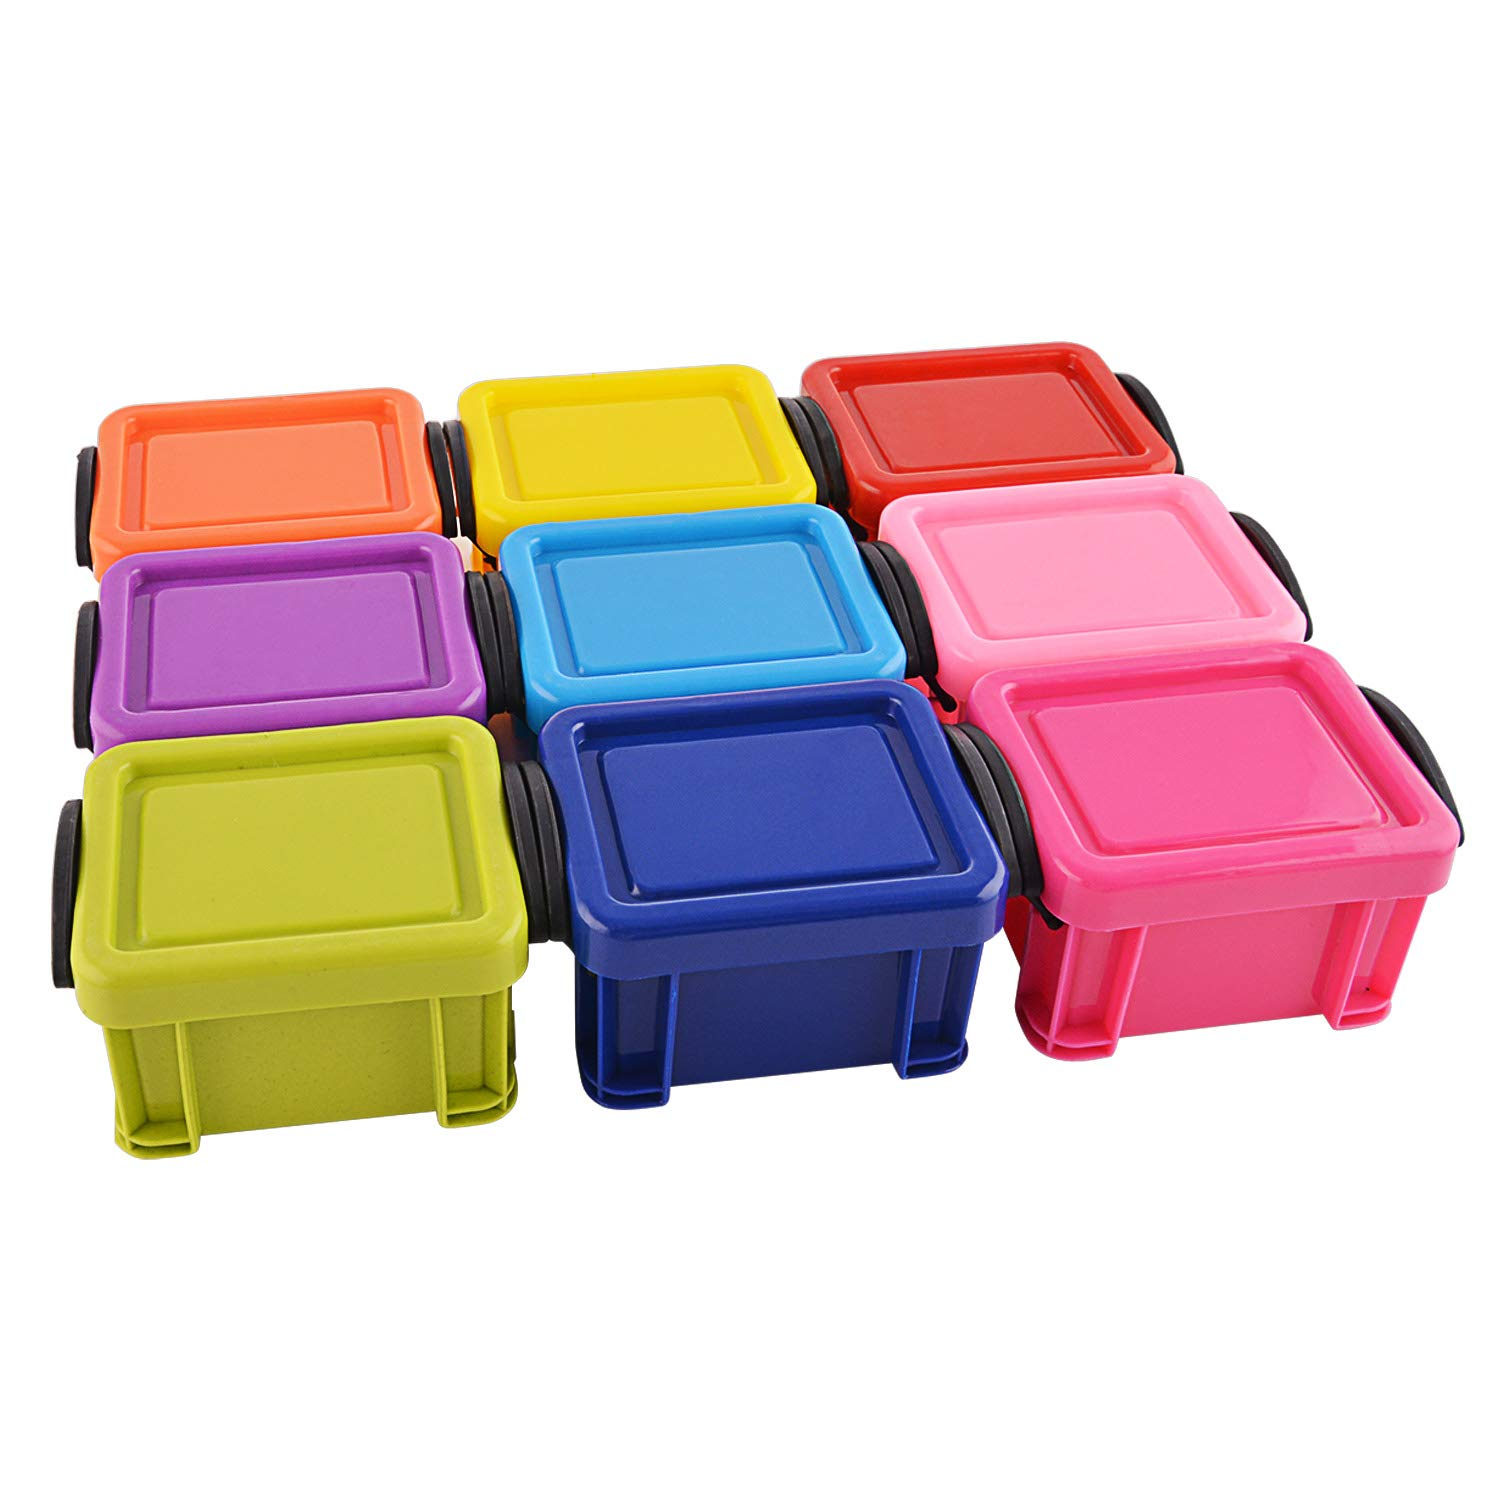 Storage Bins /Boxes Organizer- 6pc, Candy-colored smiley Storage Box jewelry accessories plastic debris sorting box packaging TYHY AX-AY-ABHI-119060